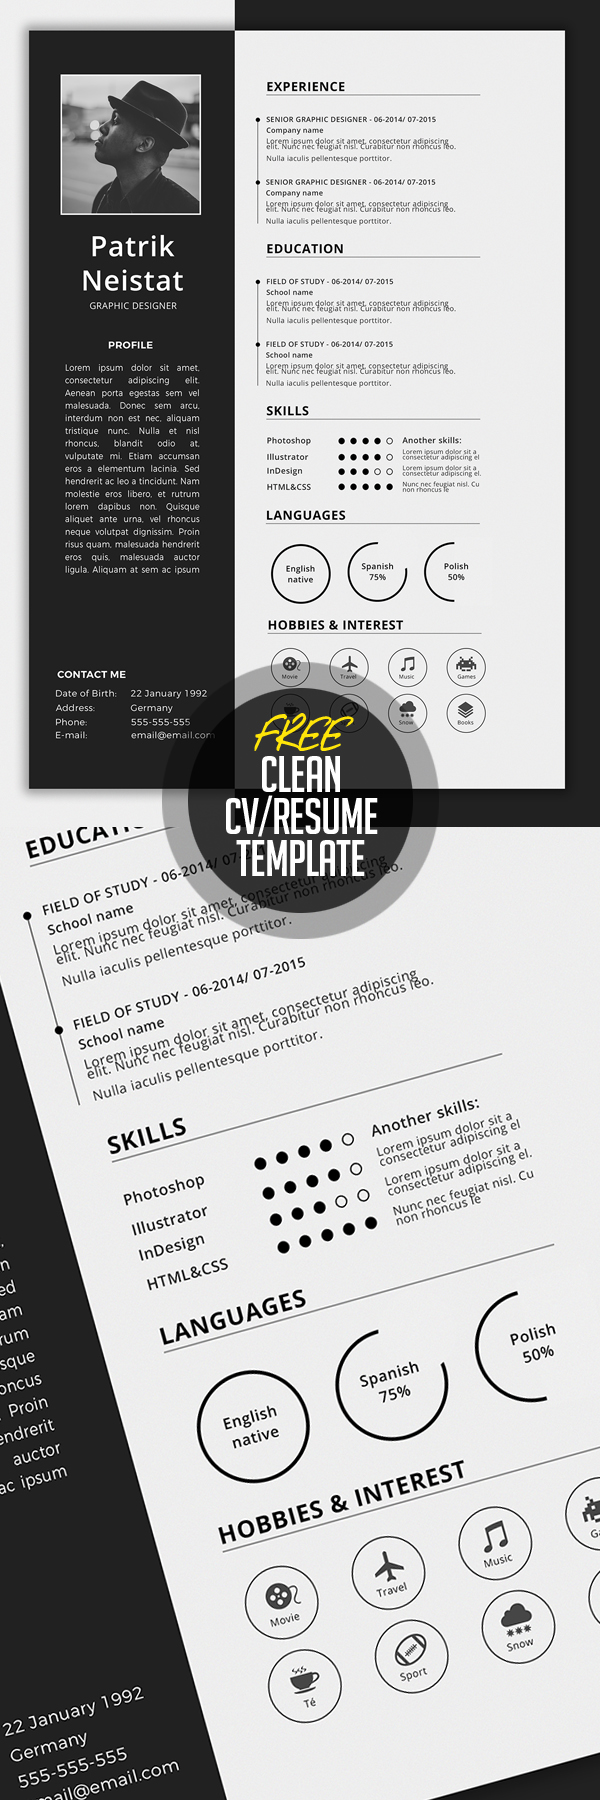 50 Free Resume Templates: Best Of 2018 -  49